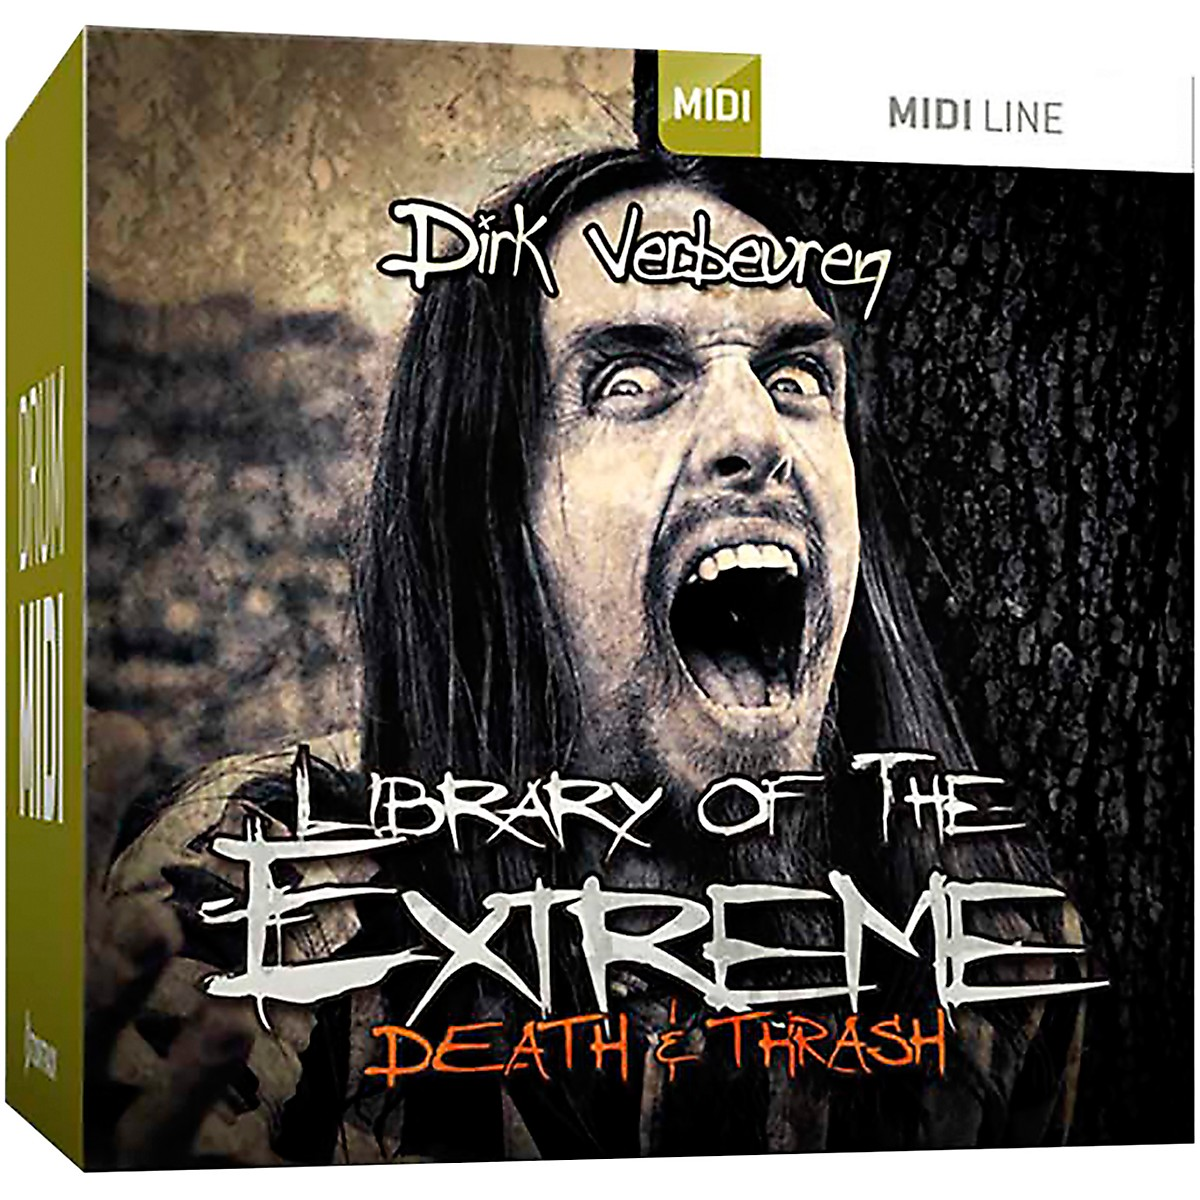 Toontrack Library of the Extreme — Death & Trash (Download)